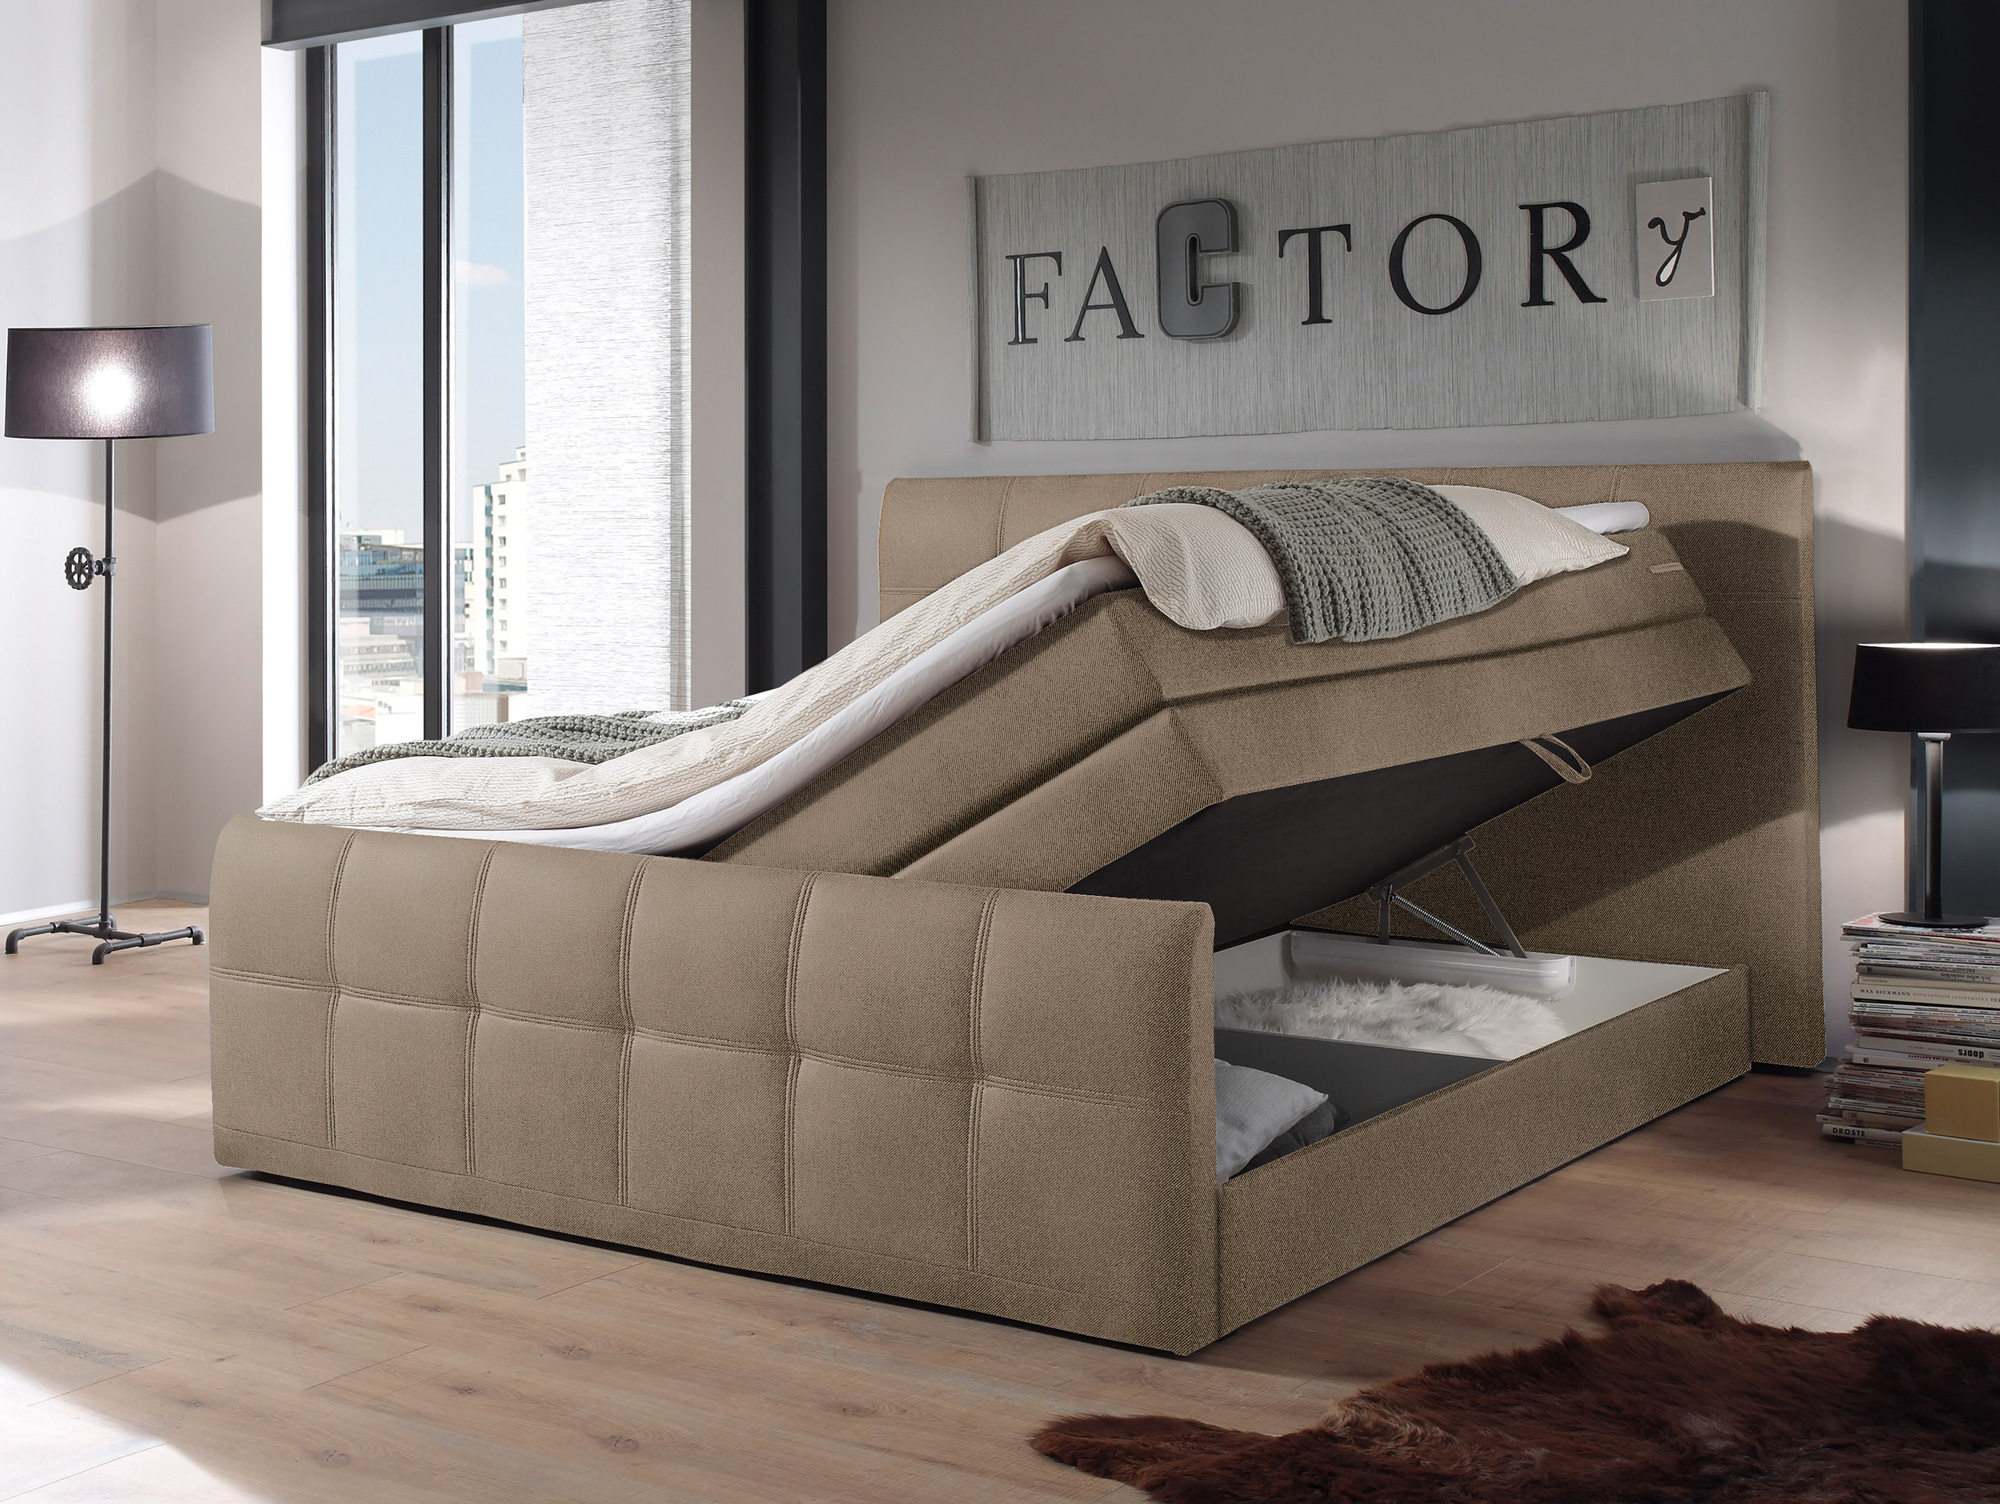 samara boxspringbett integrierter bettkasten 180x200 cm sand. Black Bedroom Furniture Sets. Home Design Ideas